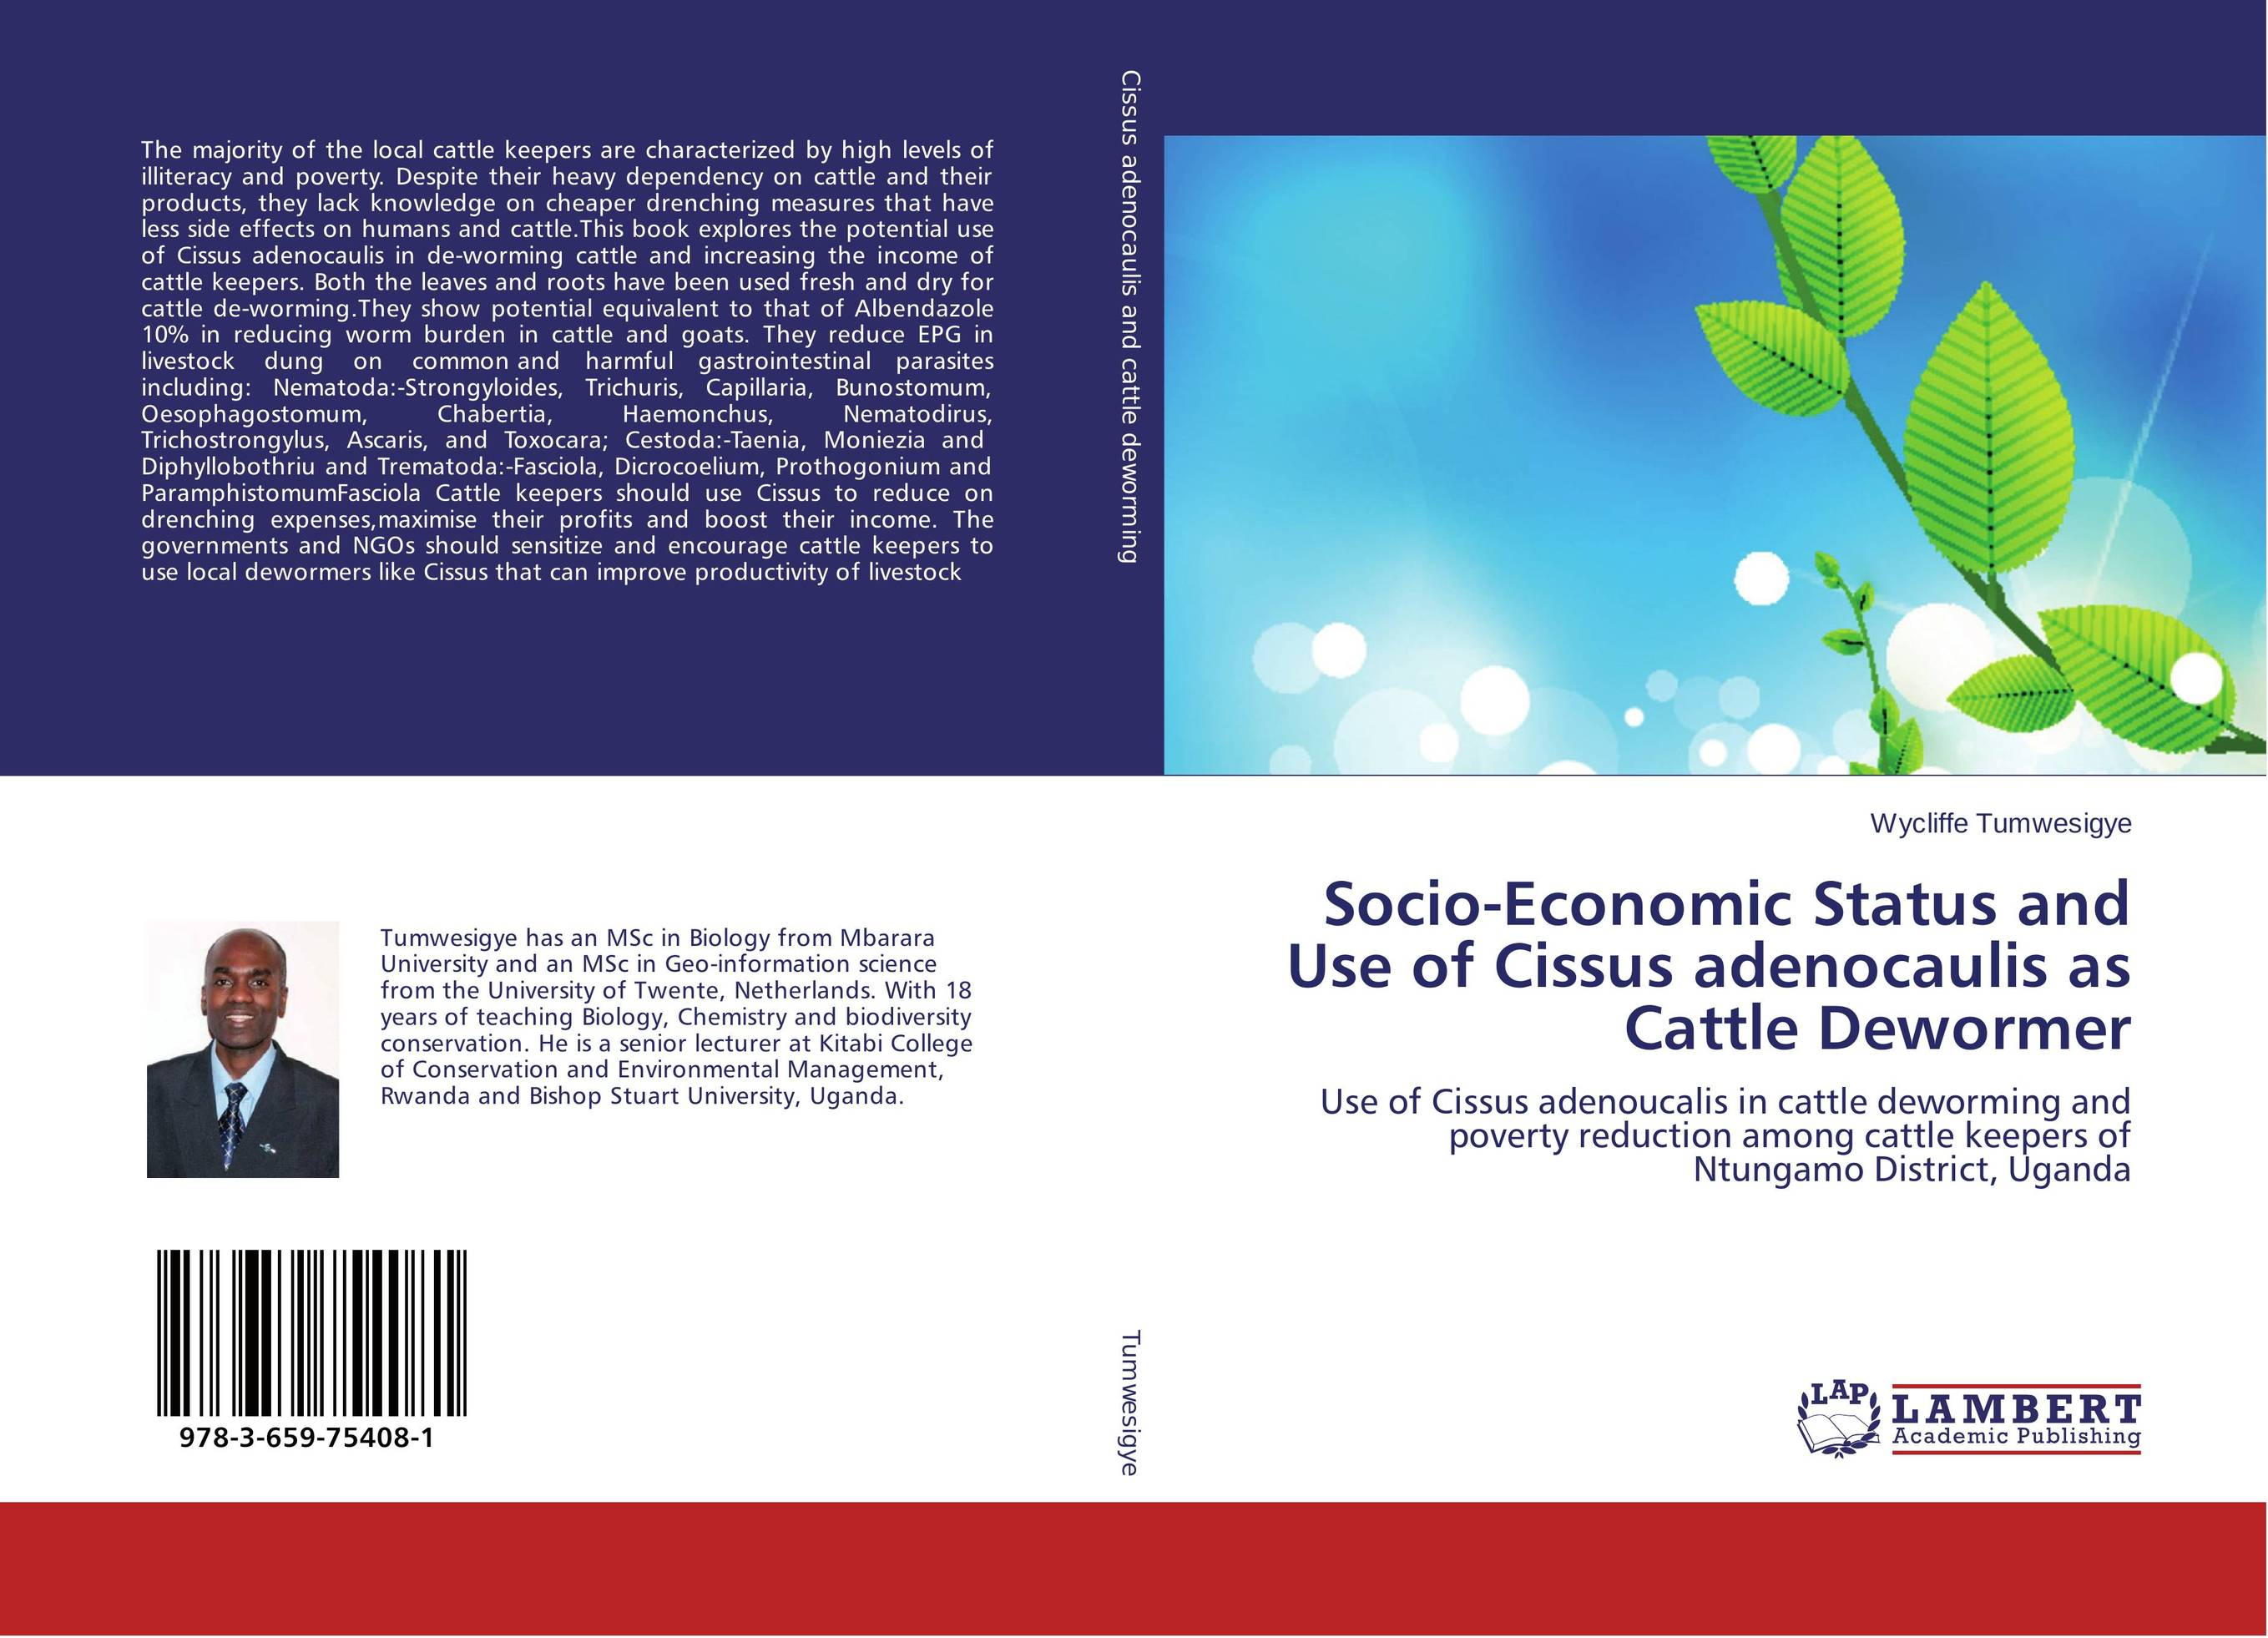 Socio-Economic Status and Use of Cissus adenocaulis as Cattle Dewormer therapeutic management of infertility in cattle